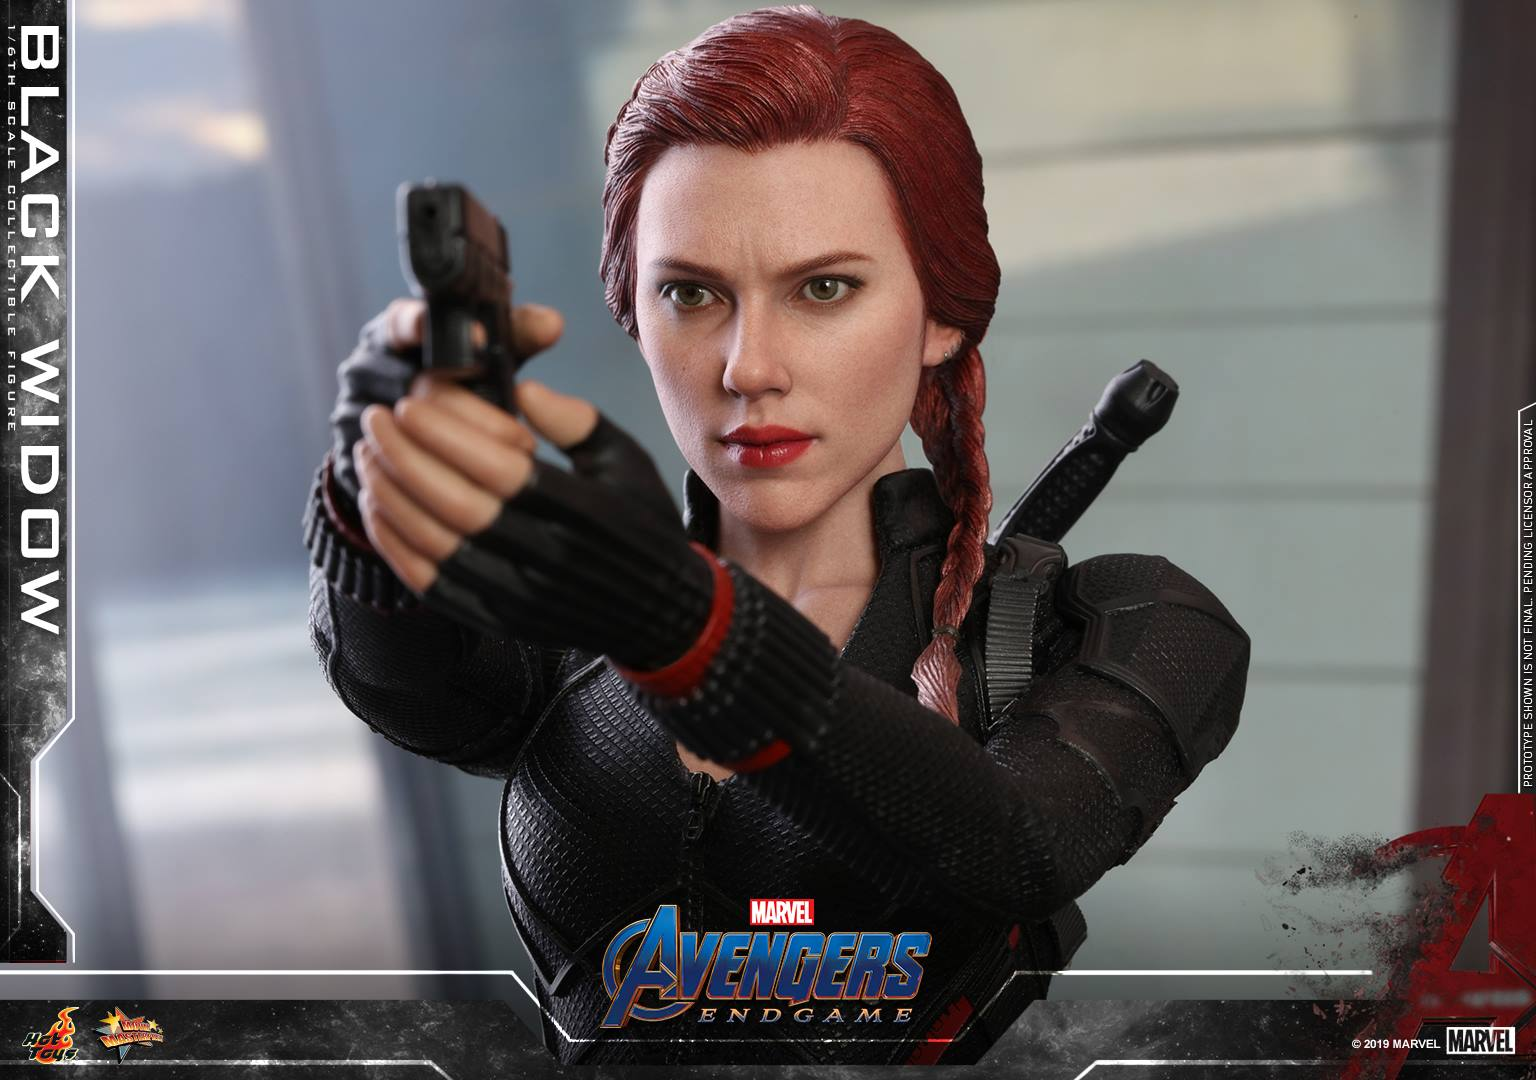 Avengers: Endgame News: Captain America And Black Widow By Hot